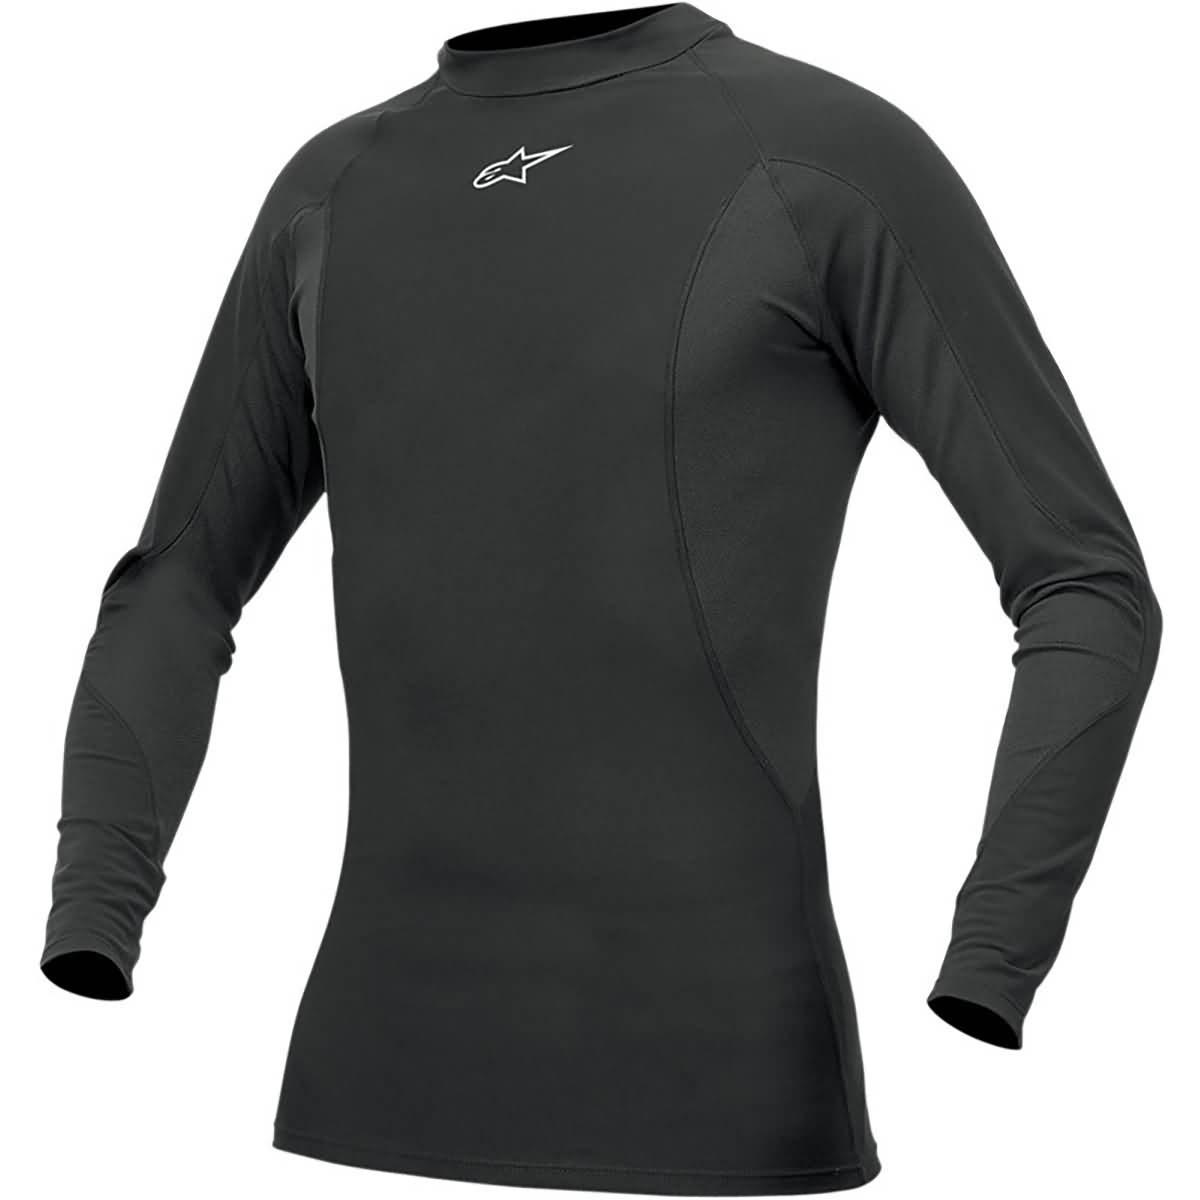 Alpinestars Bionic Tech Base Layer LS Shirt Men's Off-Road Body Armor-475348